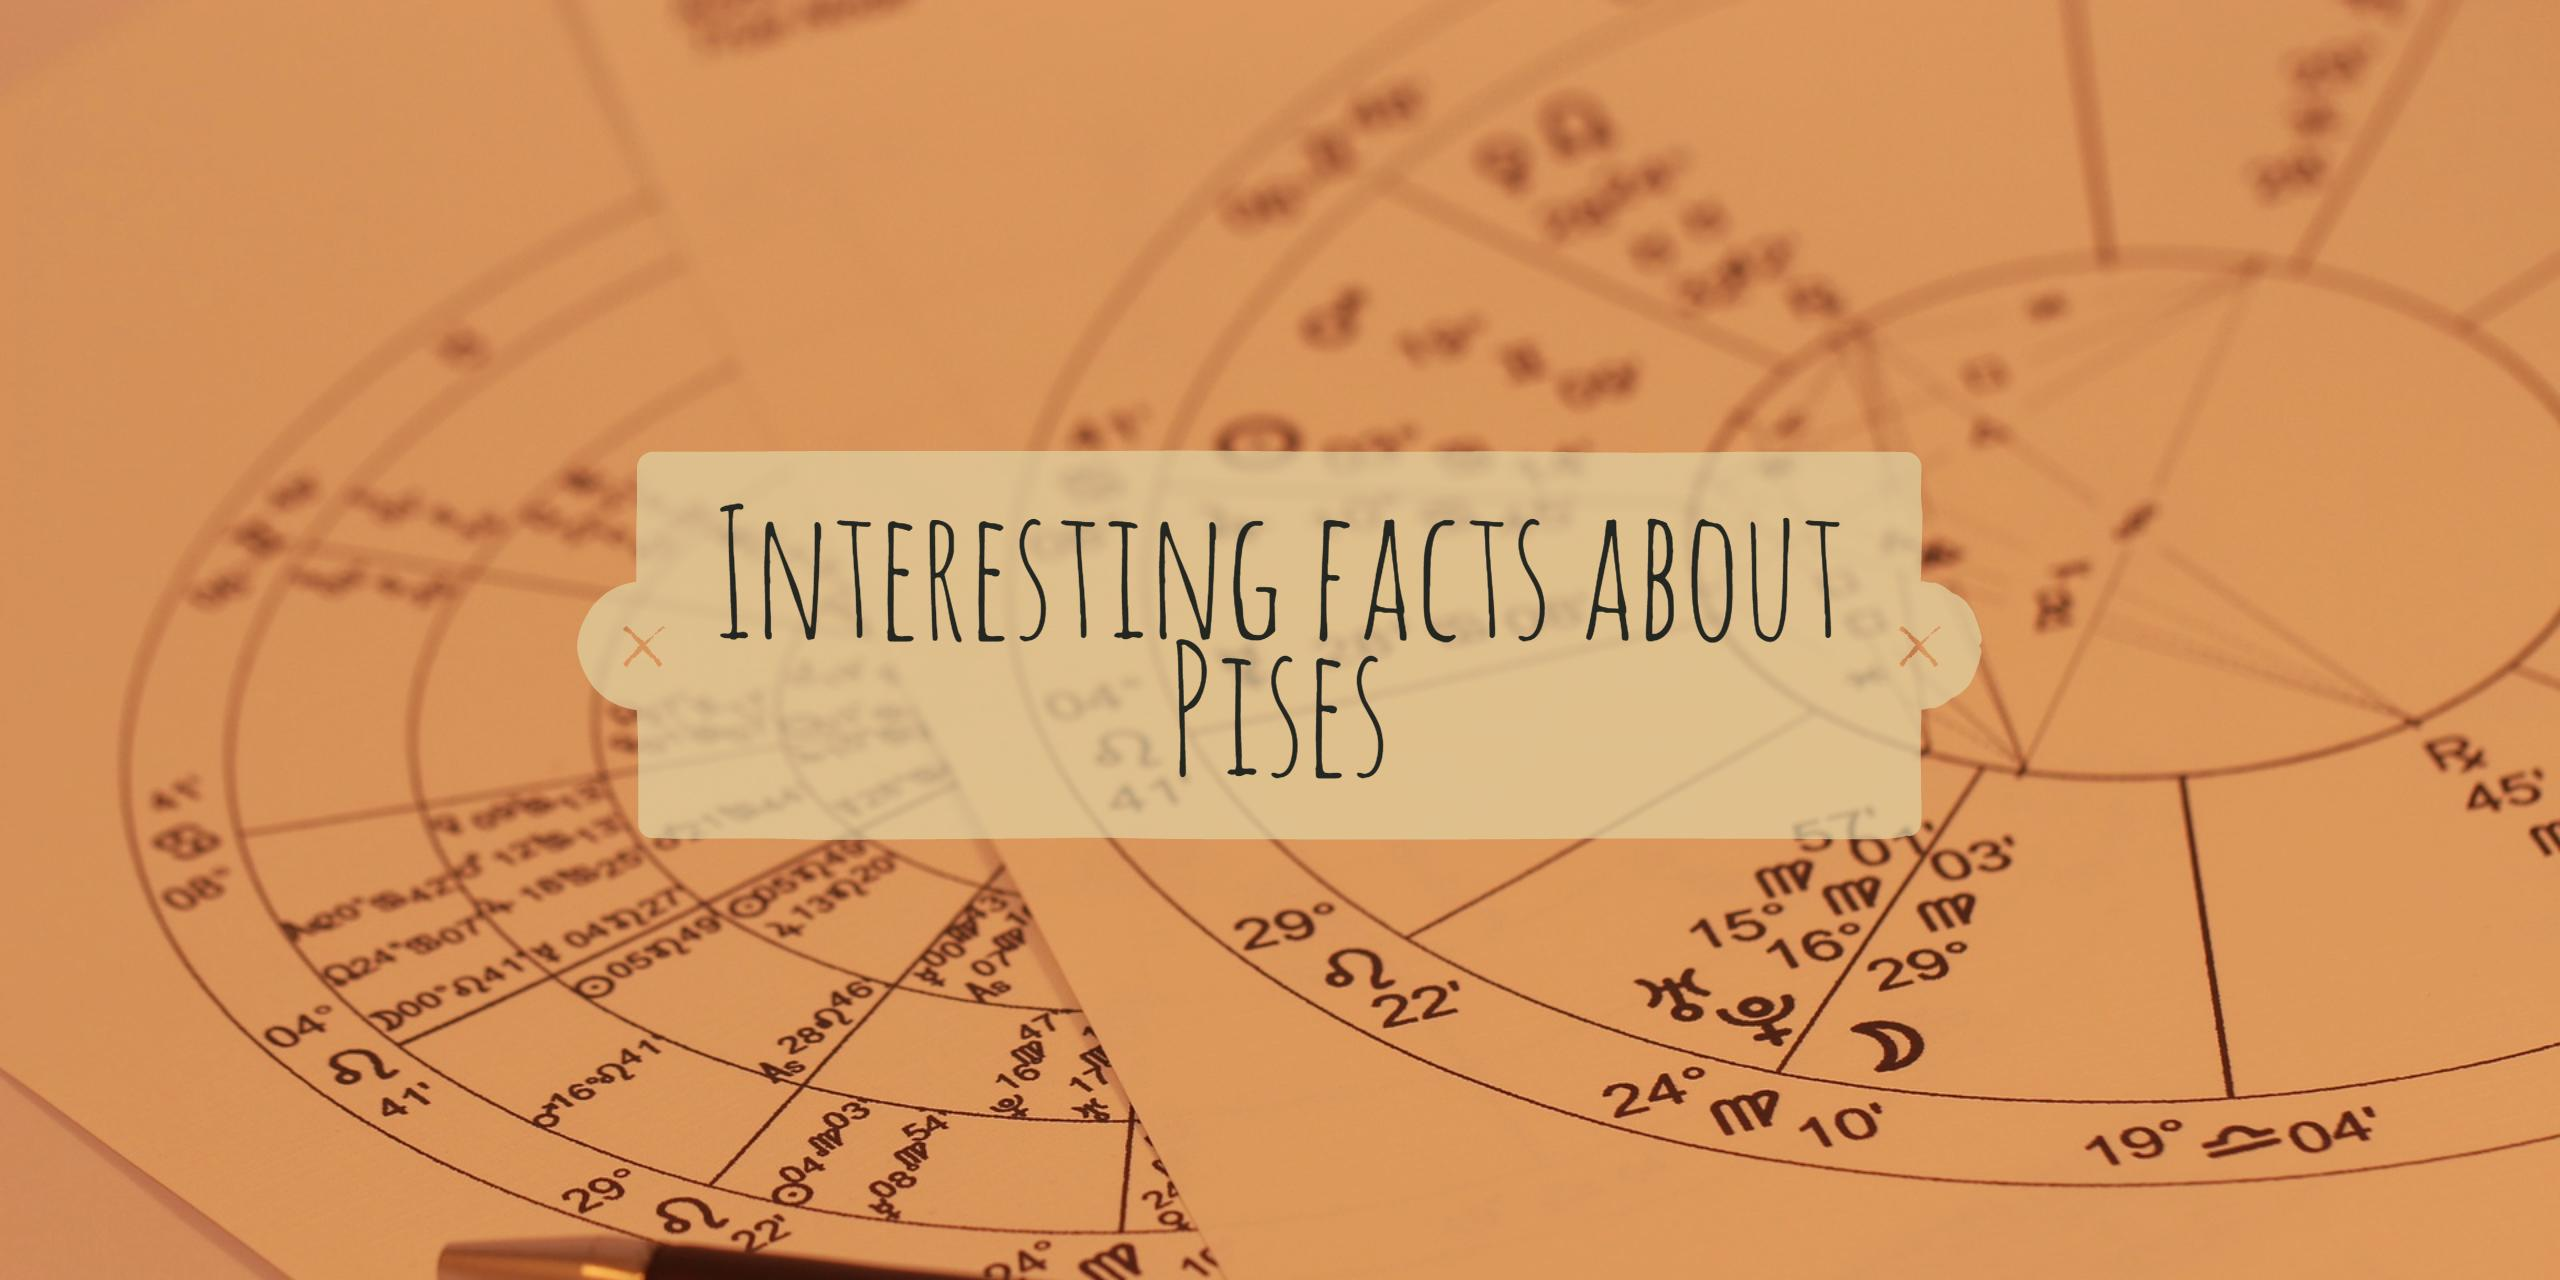 b8d21a191 Interesting facts about pisces - TwentyOneFacts